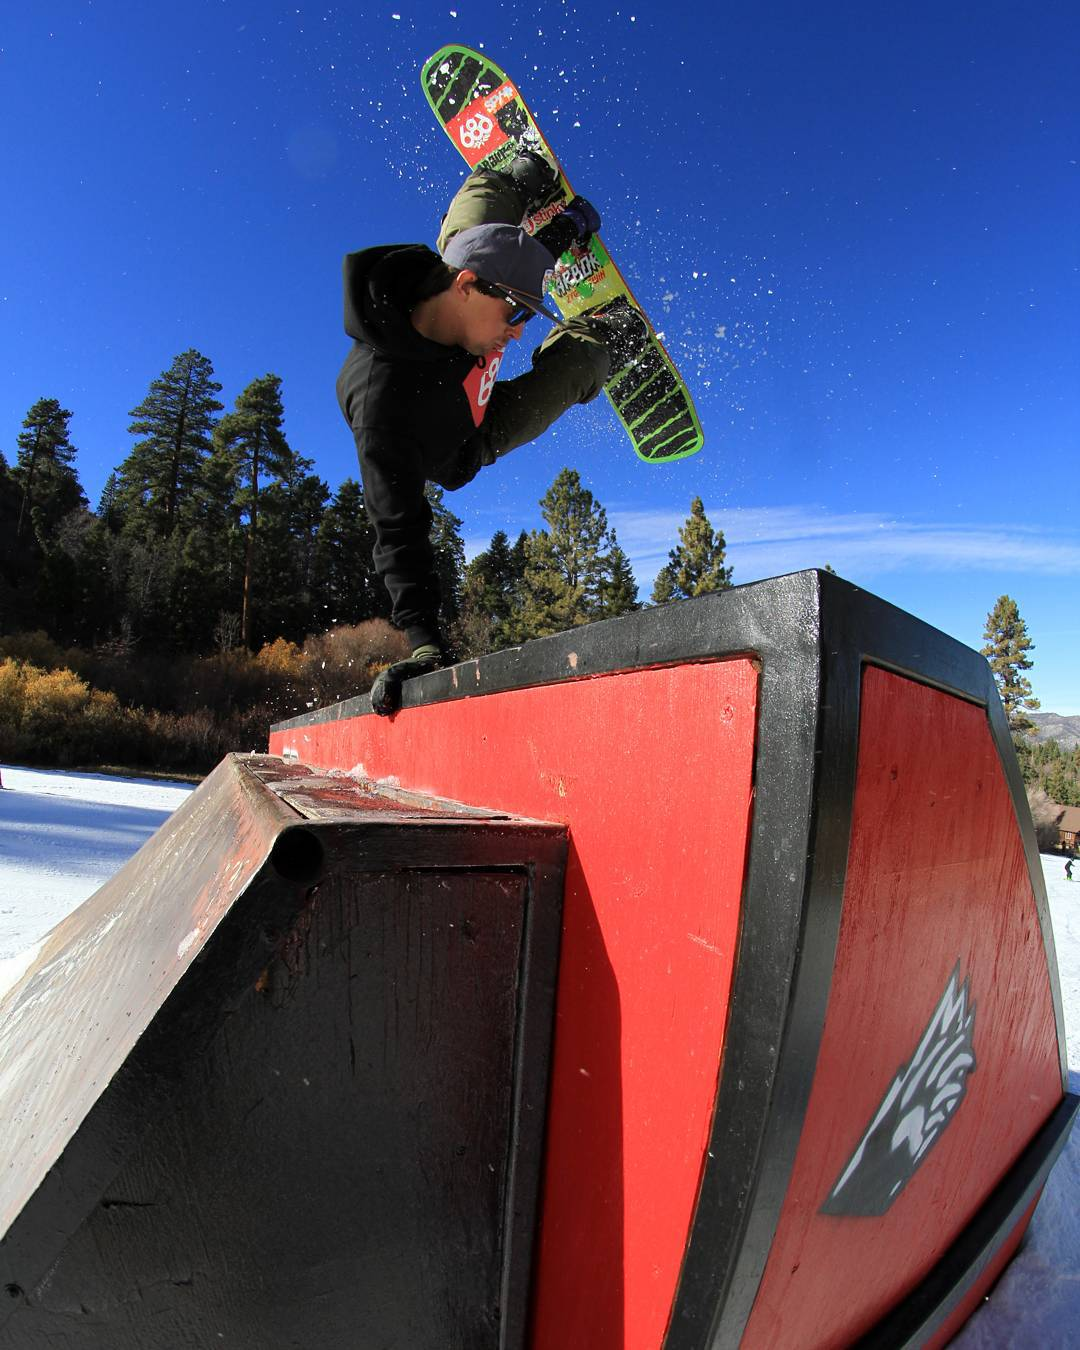 The next #FluxBindings #ReNamed episode titled Back To Bear Mountain is dropping this weekend! Rider in photo: @MikeEGray  Photo by: @JupiterPeople (@shylekafers) #snowboarding #FluxReNamed #snowboard #snowboardvideo #bearmountain @bear_mountain #mikegray